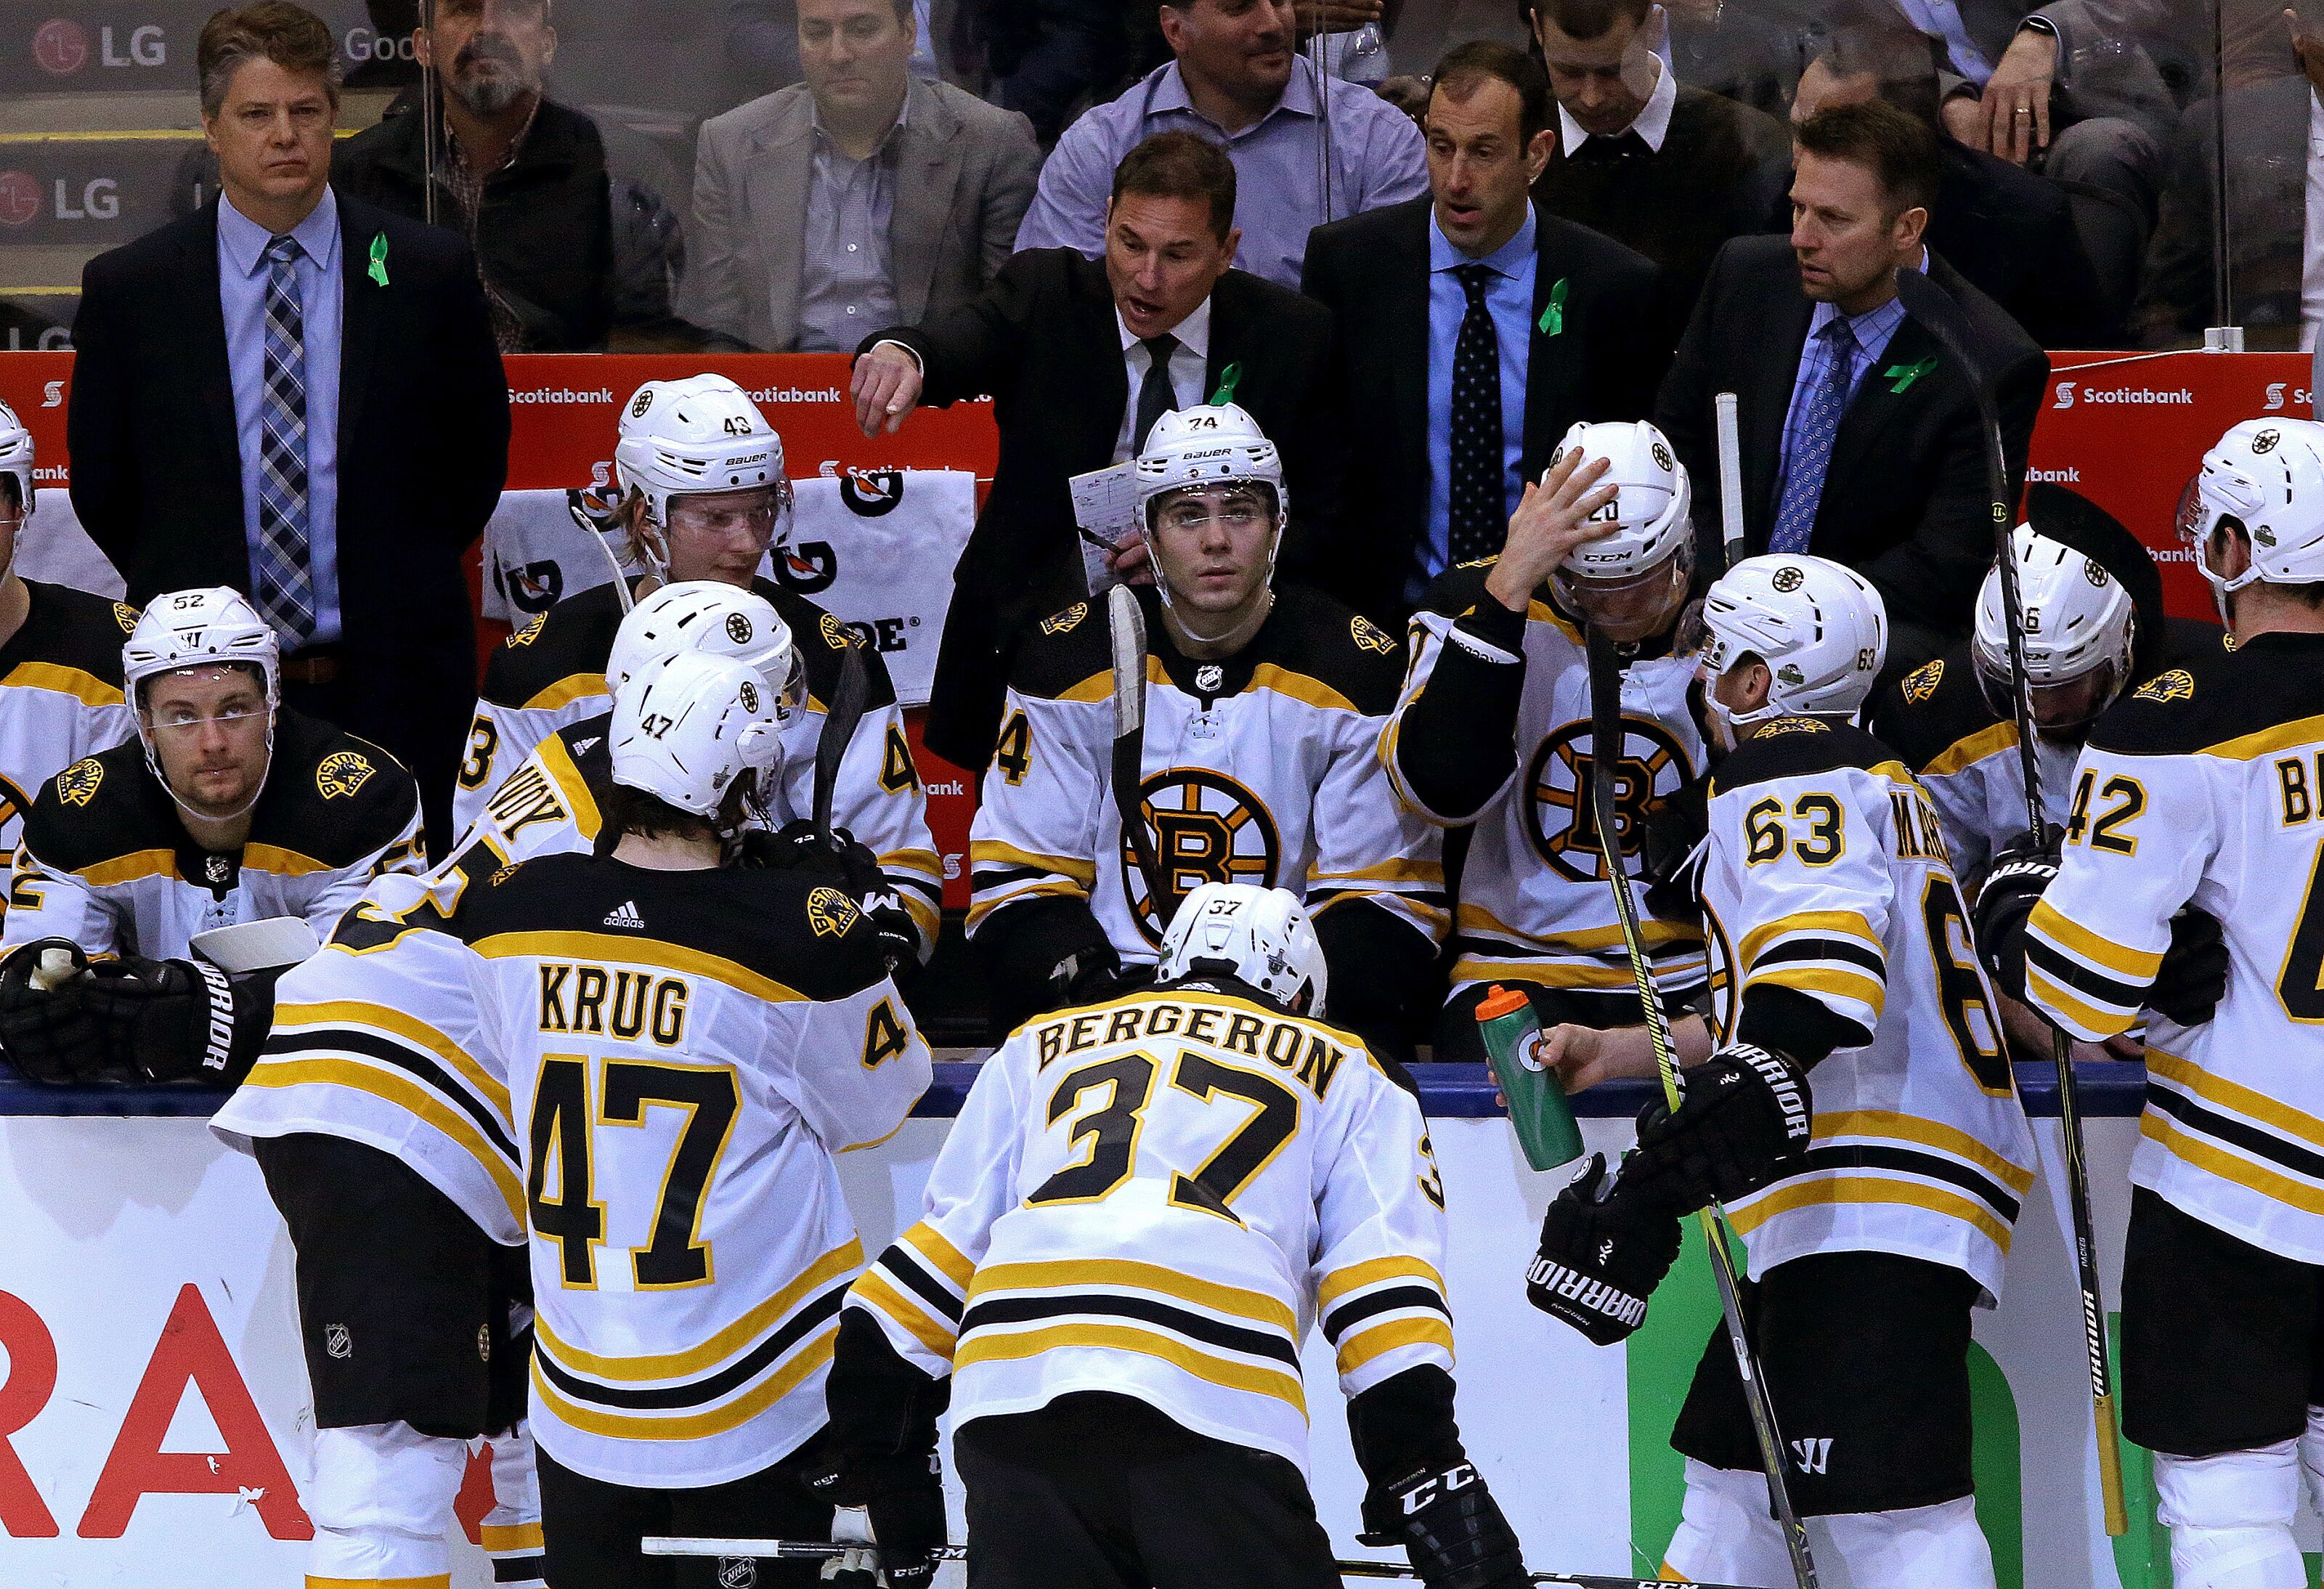 947250286-2018-stanley-cup-playoffs-boston-bruins-vs-toronto-maples-leafs-at-air-canada-centre.jpg